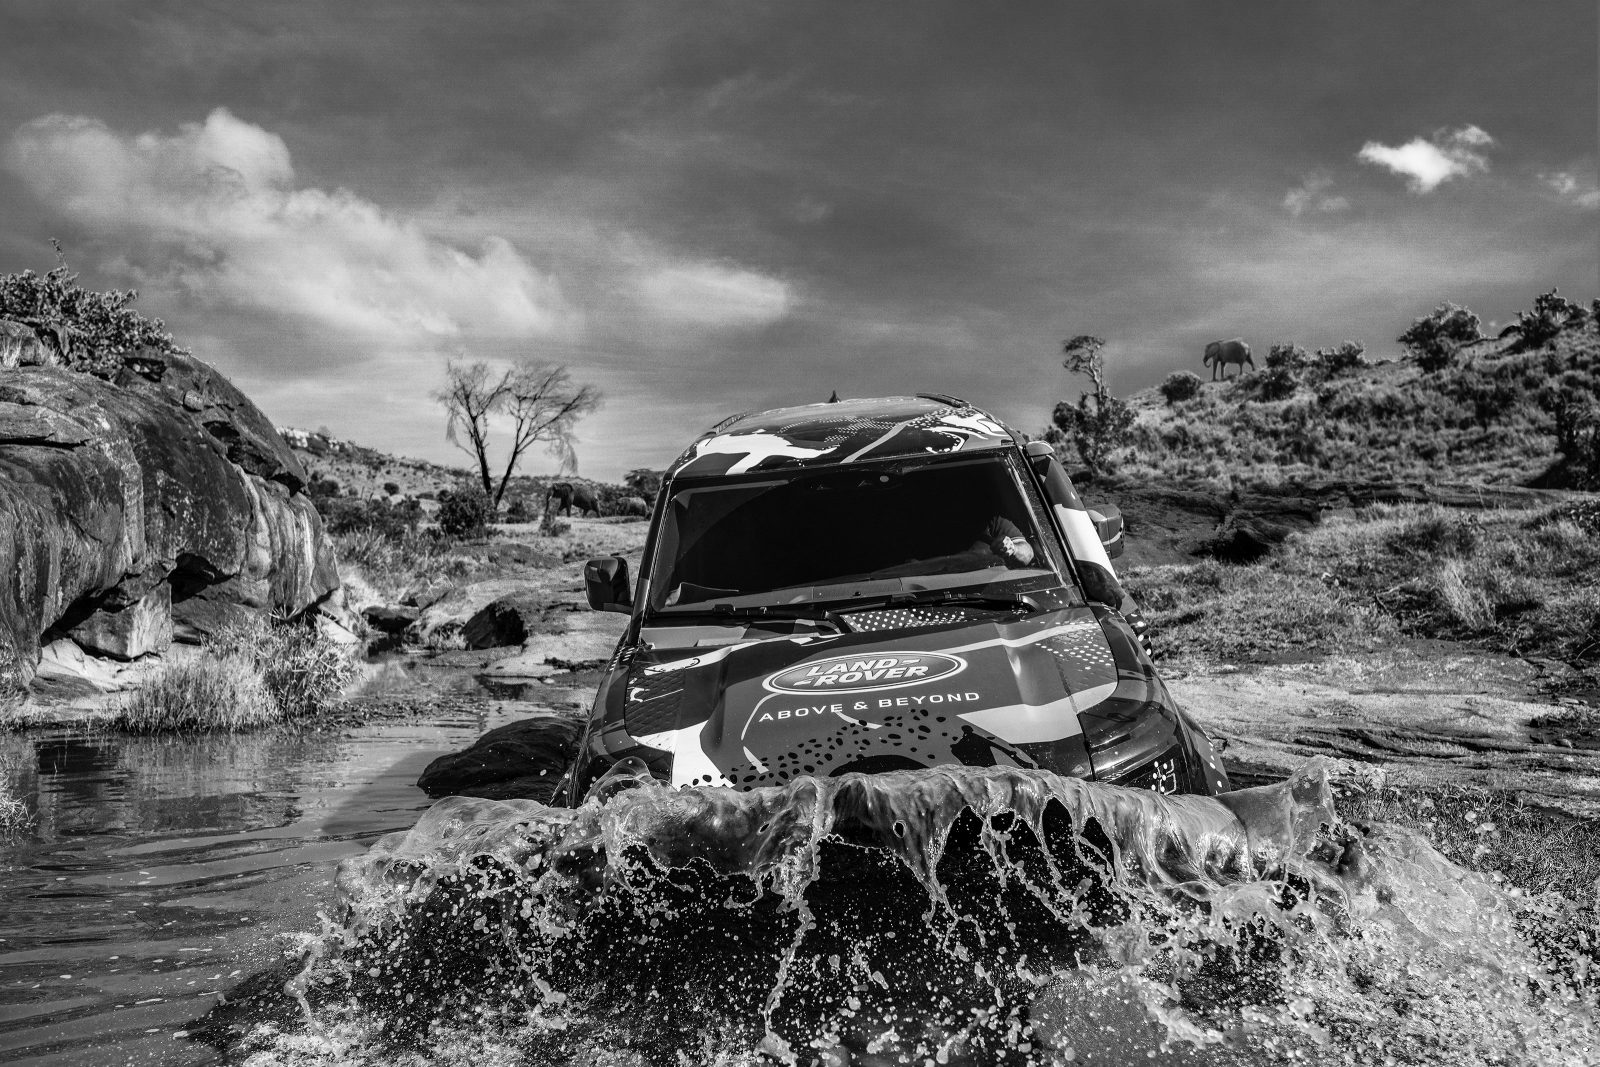 David Yarrow teams up with Land Rover to defend Kenya's lions